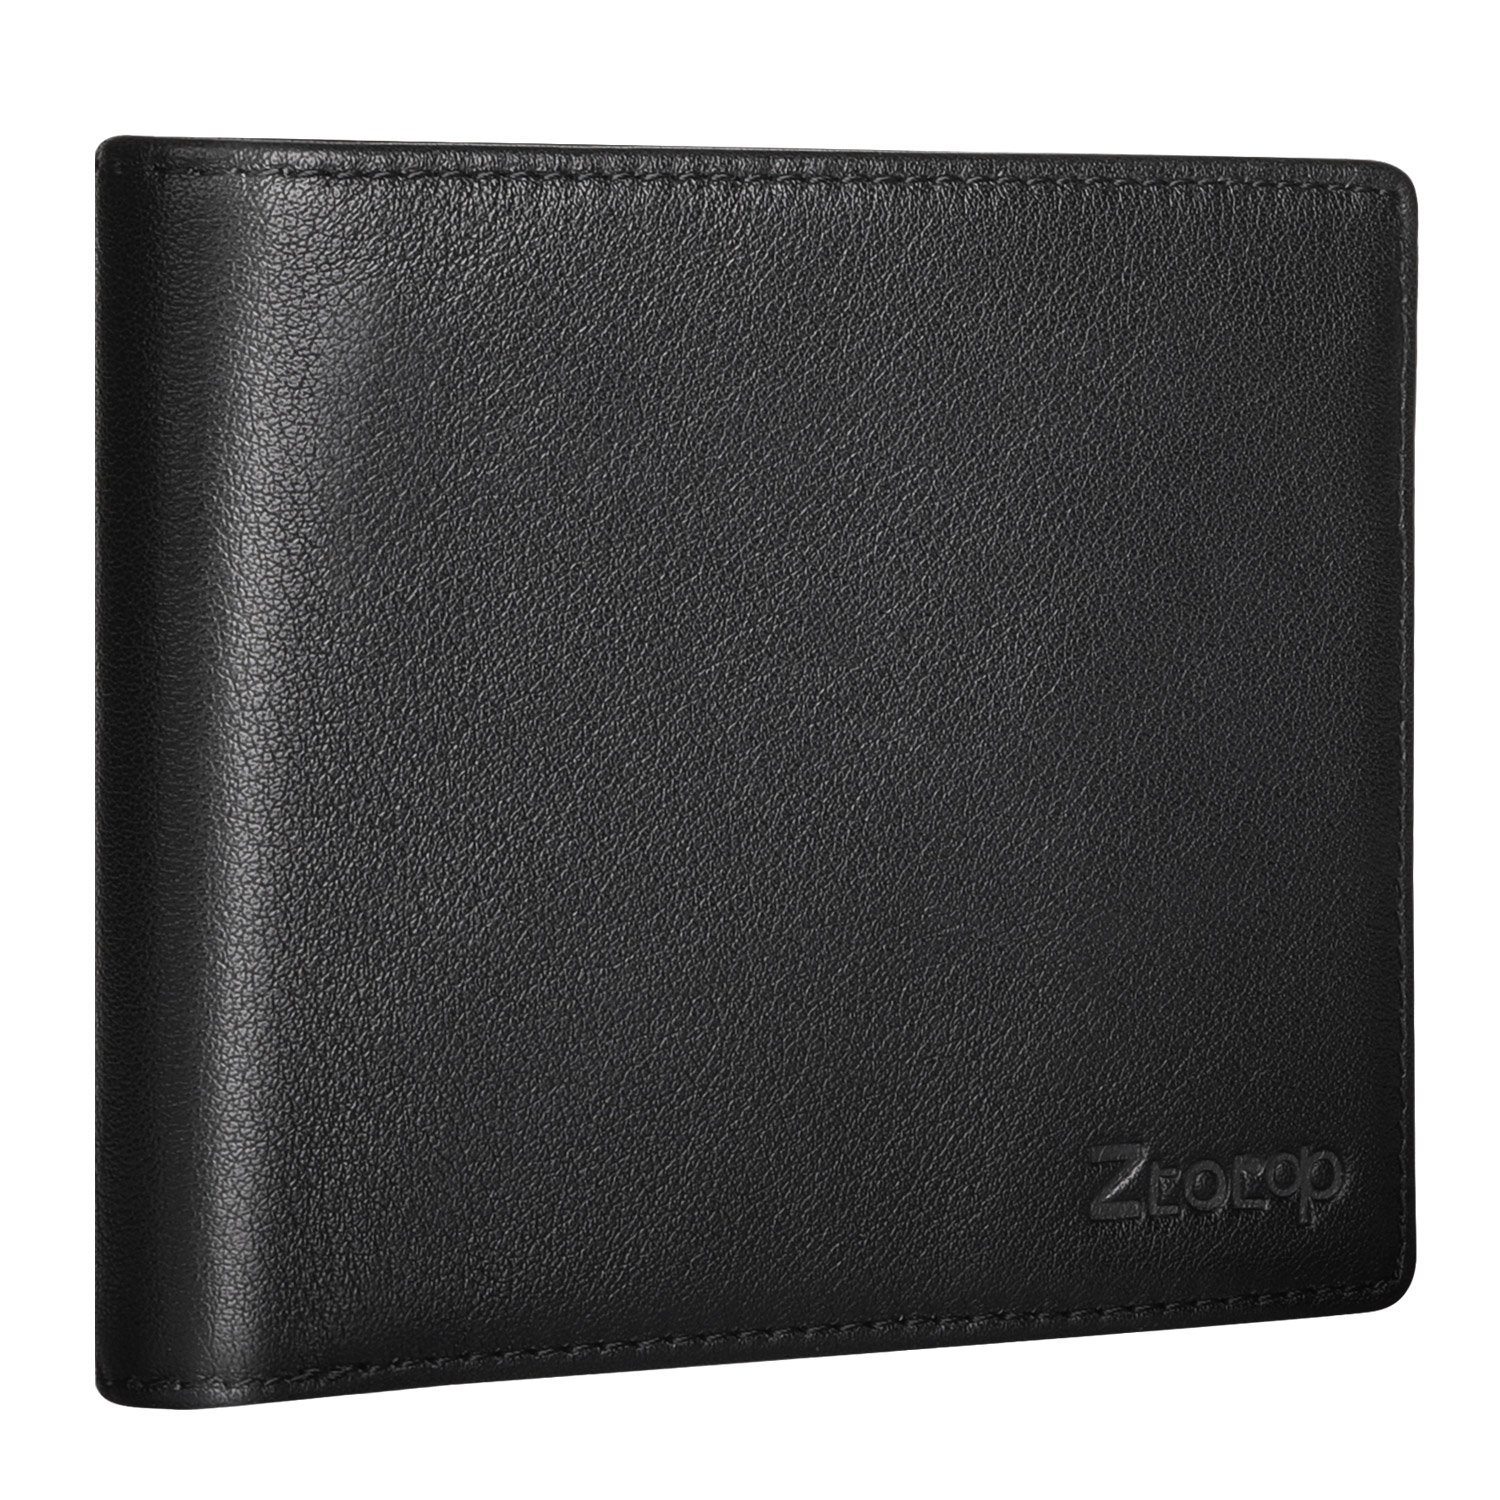 Ztotop Mens Wallet Leather, Slim Bifold RFID Blocking Wallet with 2 ID Window